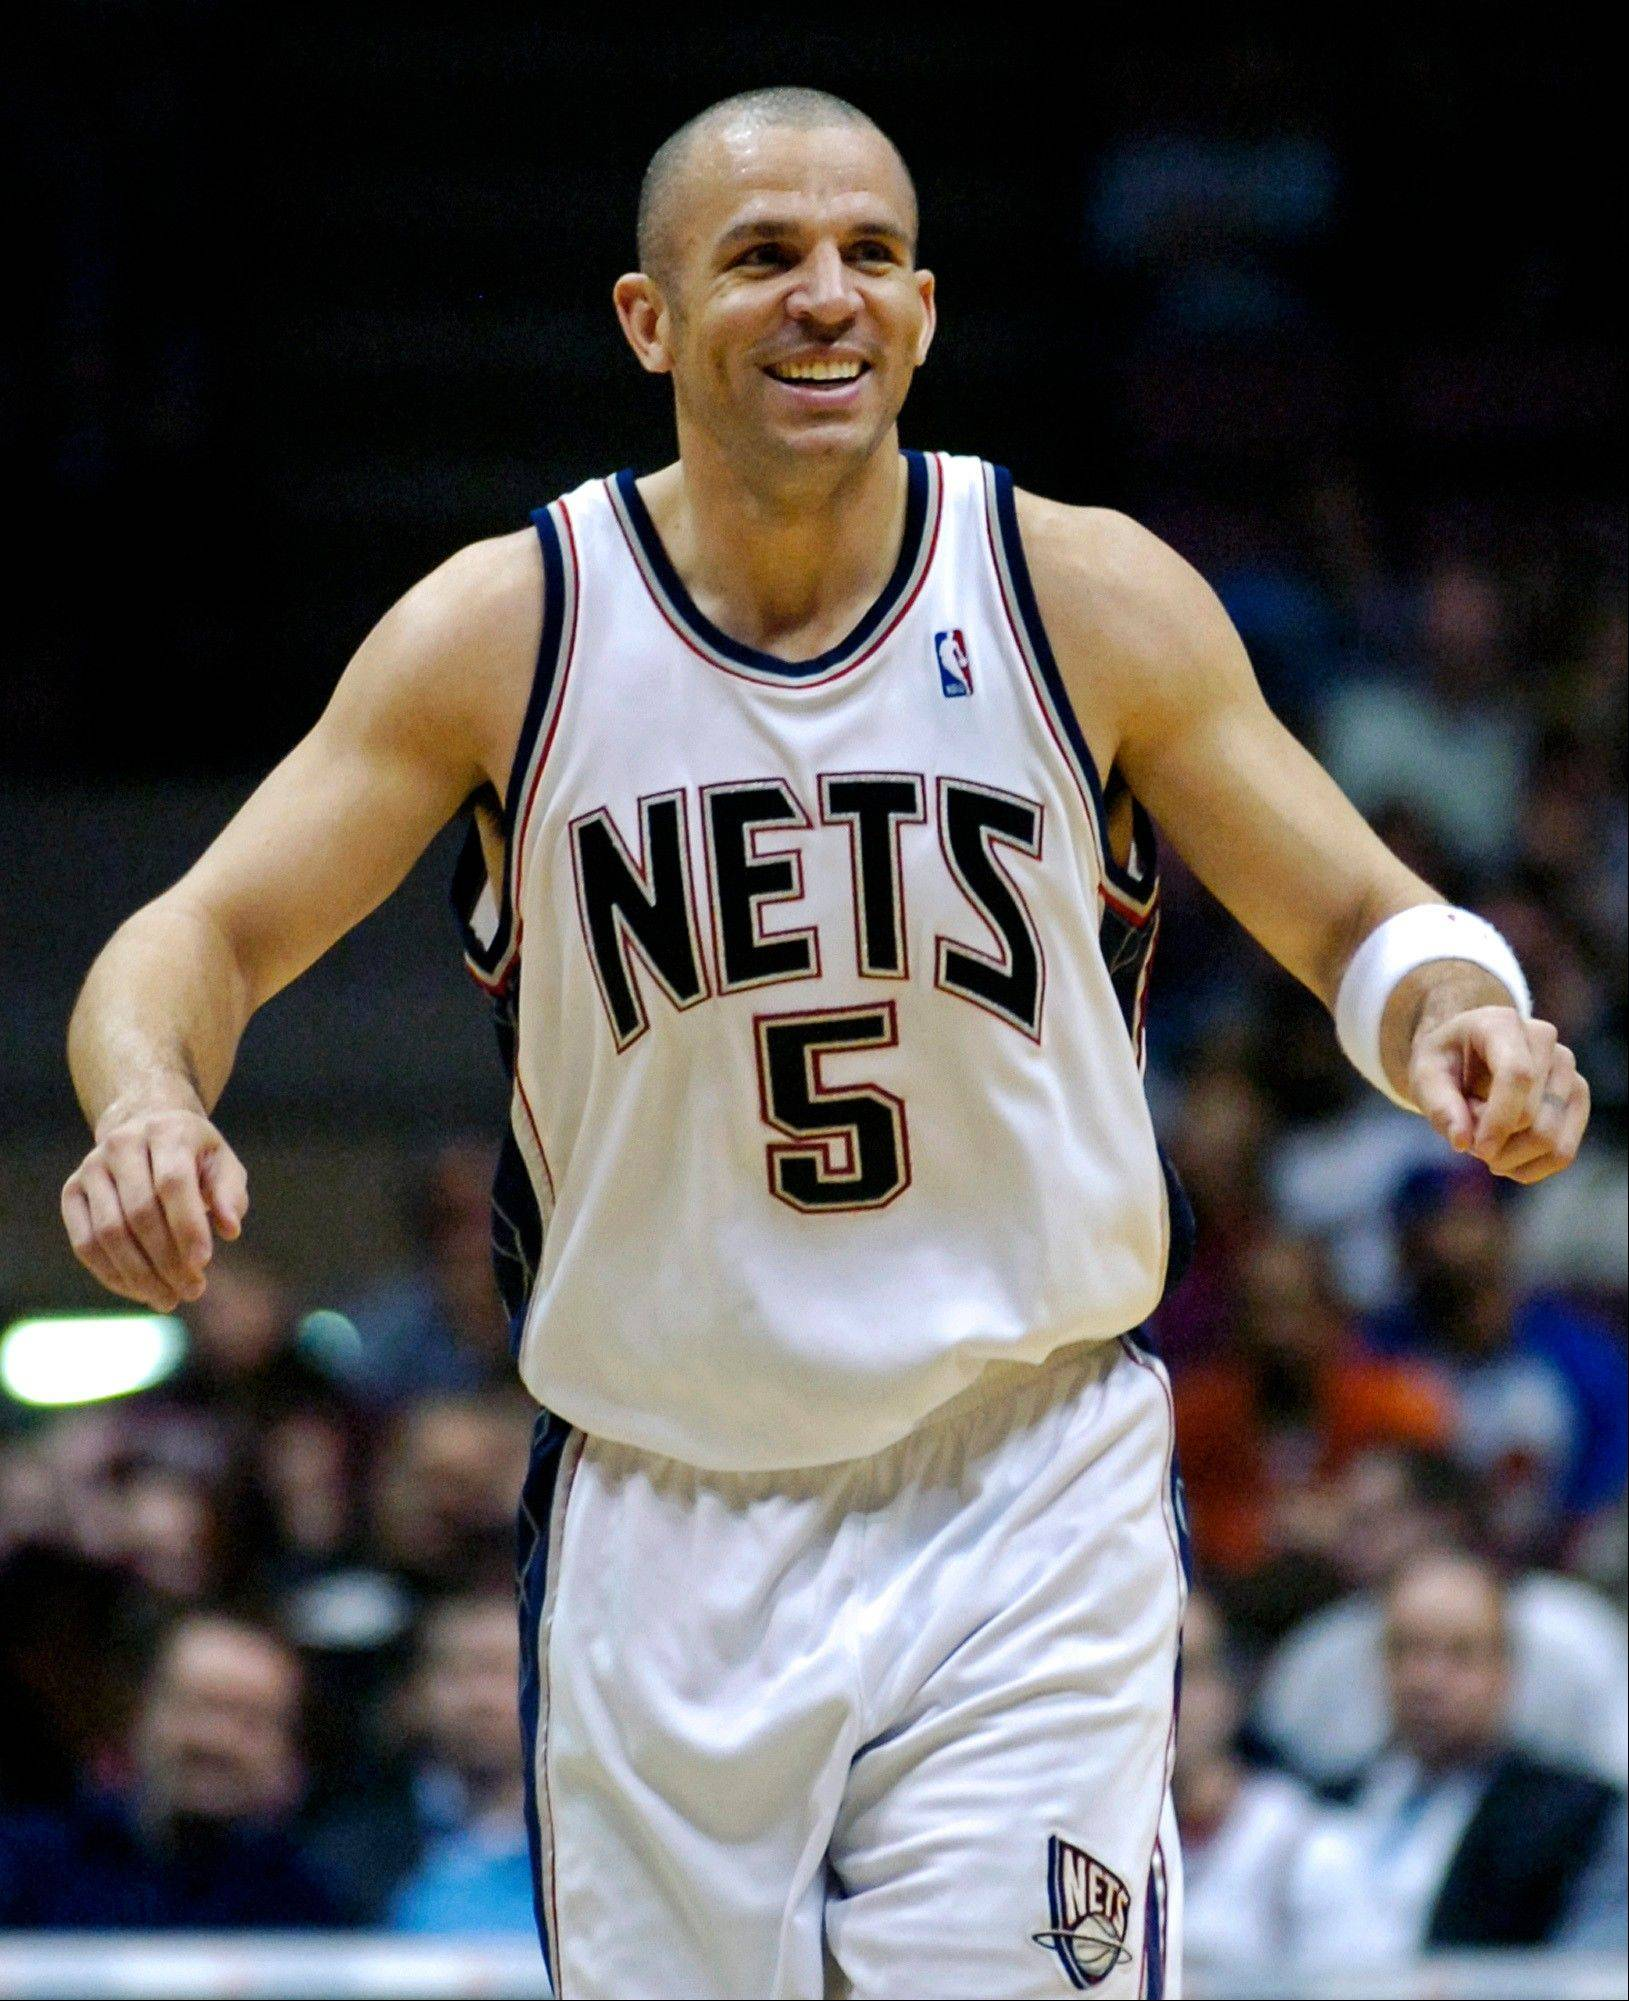 FILE - In this April 13, 2007, file photo, then-New Jersey Nets' Jason Kidd reacts during an NBA basketball game in East Rutherford, N.J. The Brooklyn Nets hired Jason Kidd as their coach Wednesday, June 12, 2013, bringing the former star back to the franchise he led to its greatest NBA success.